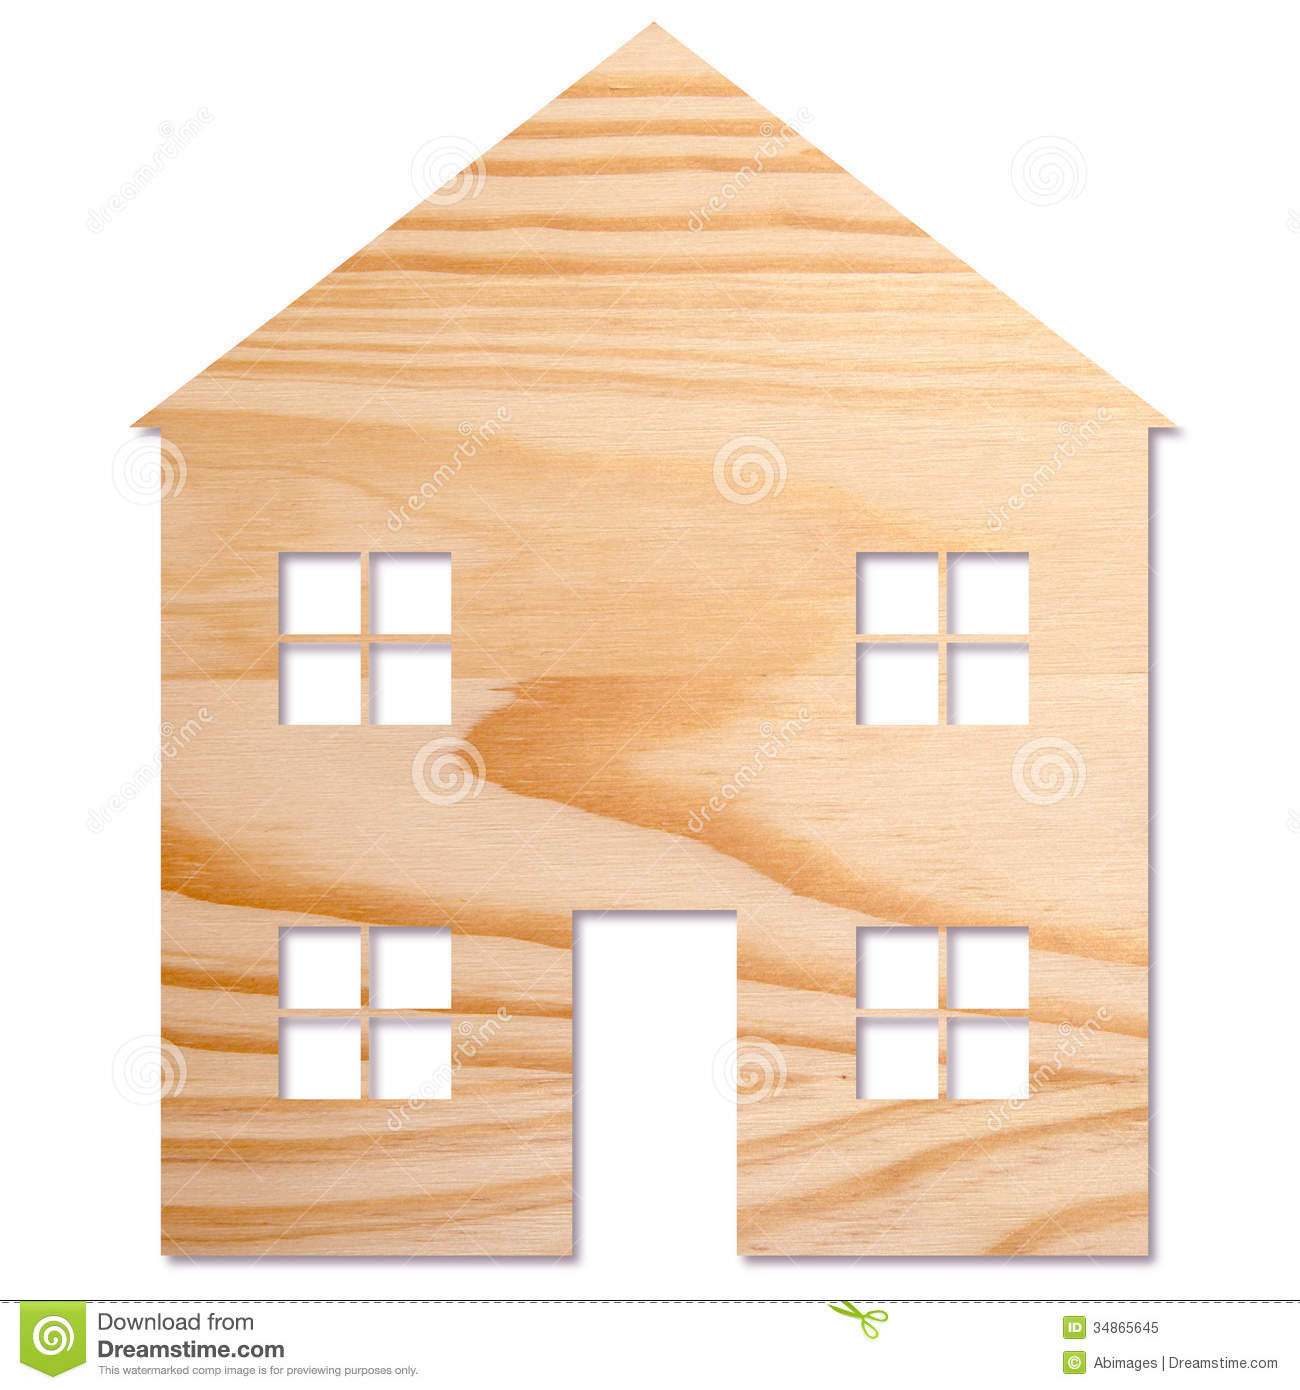 House In Wood Royalty Free Stock Photo - Image: 34865645